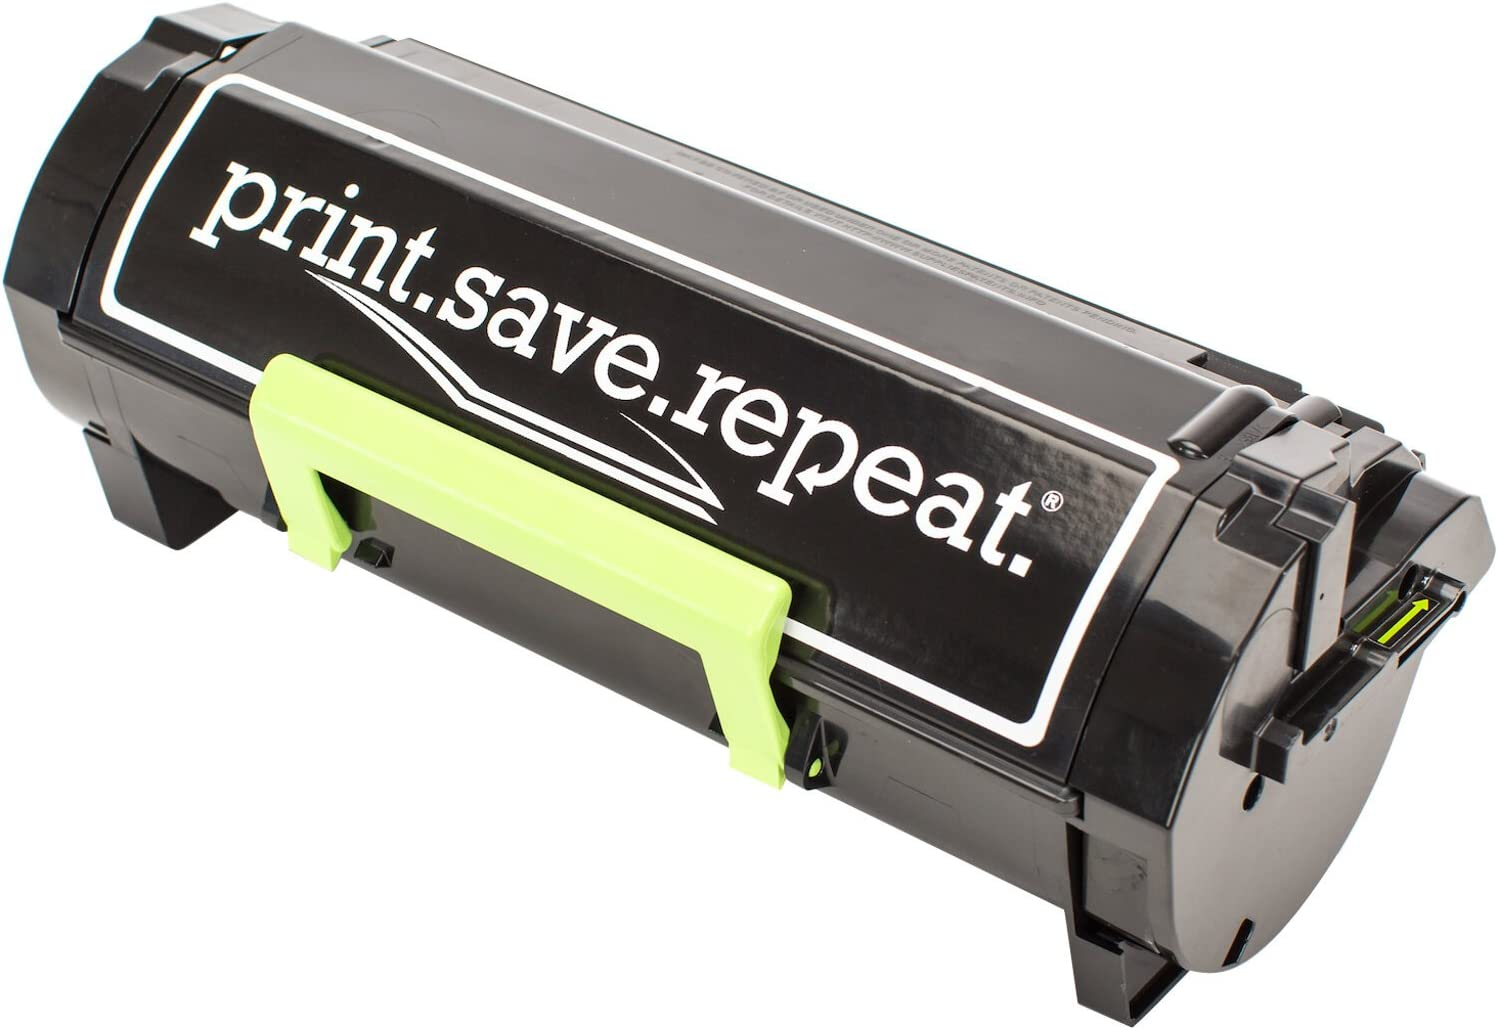 MX517 MS617 MS517 MX617 Lexmark 51B1H00 High Yield Remanufactured Toner Cartridge for MS417 MX417 8,500 Pages Print.Save.Repeat